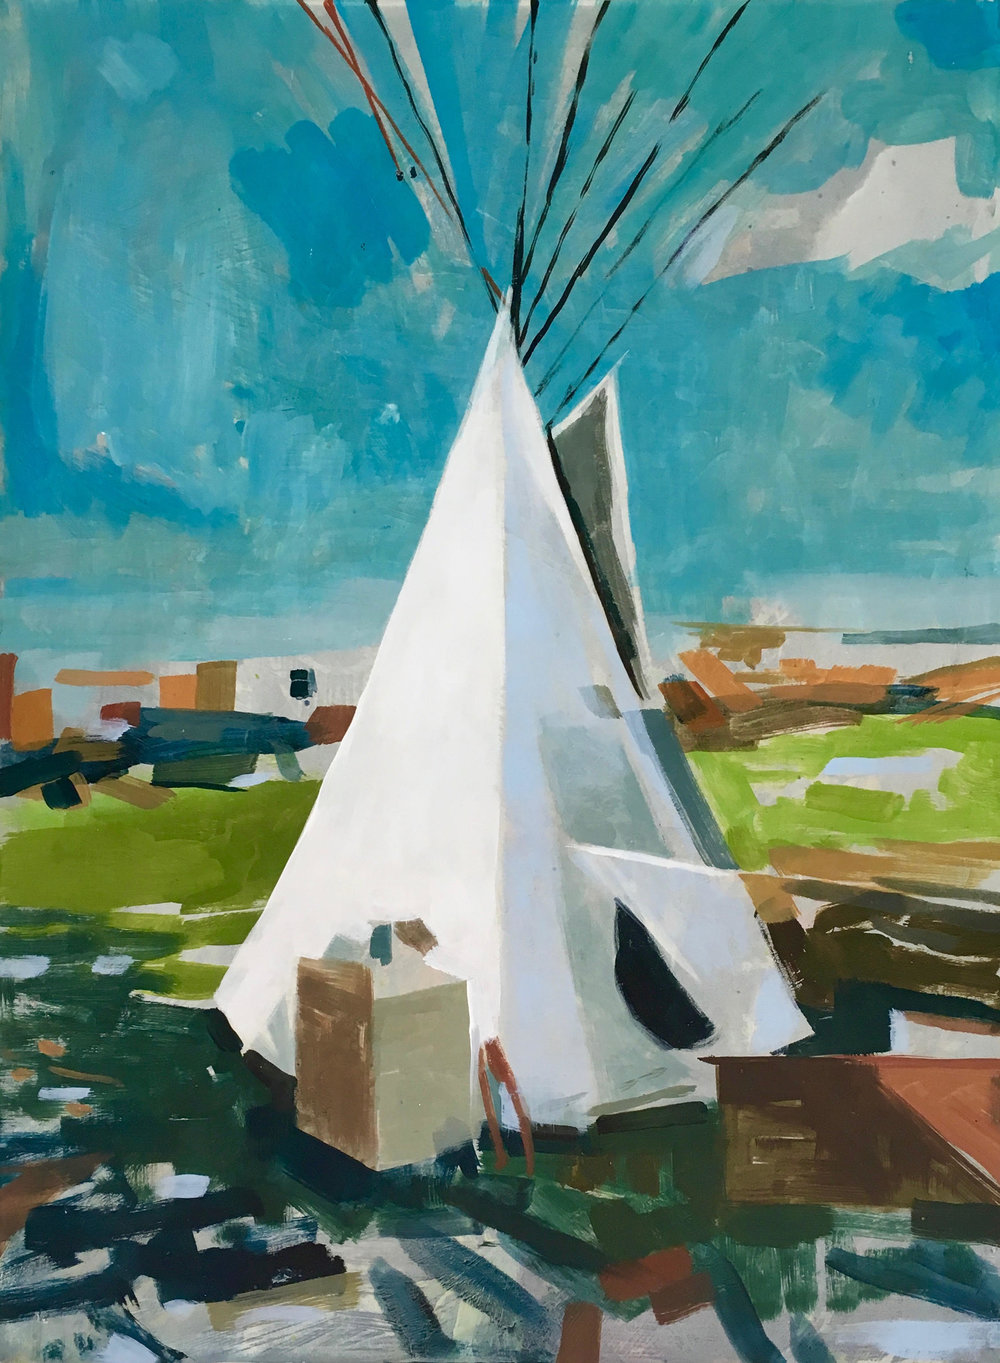 Tipi by Erica Lamberson